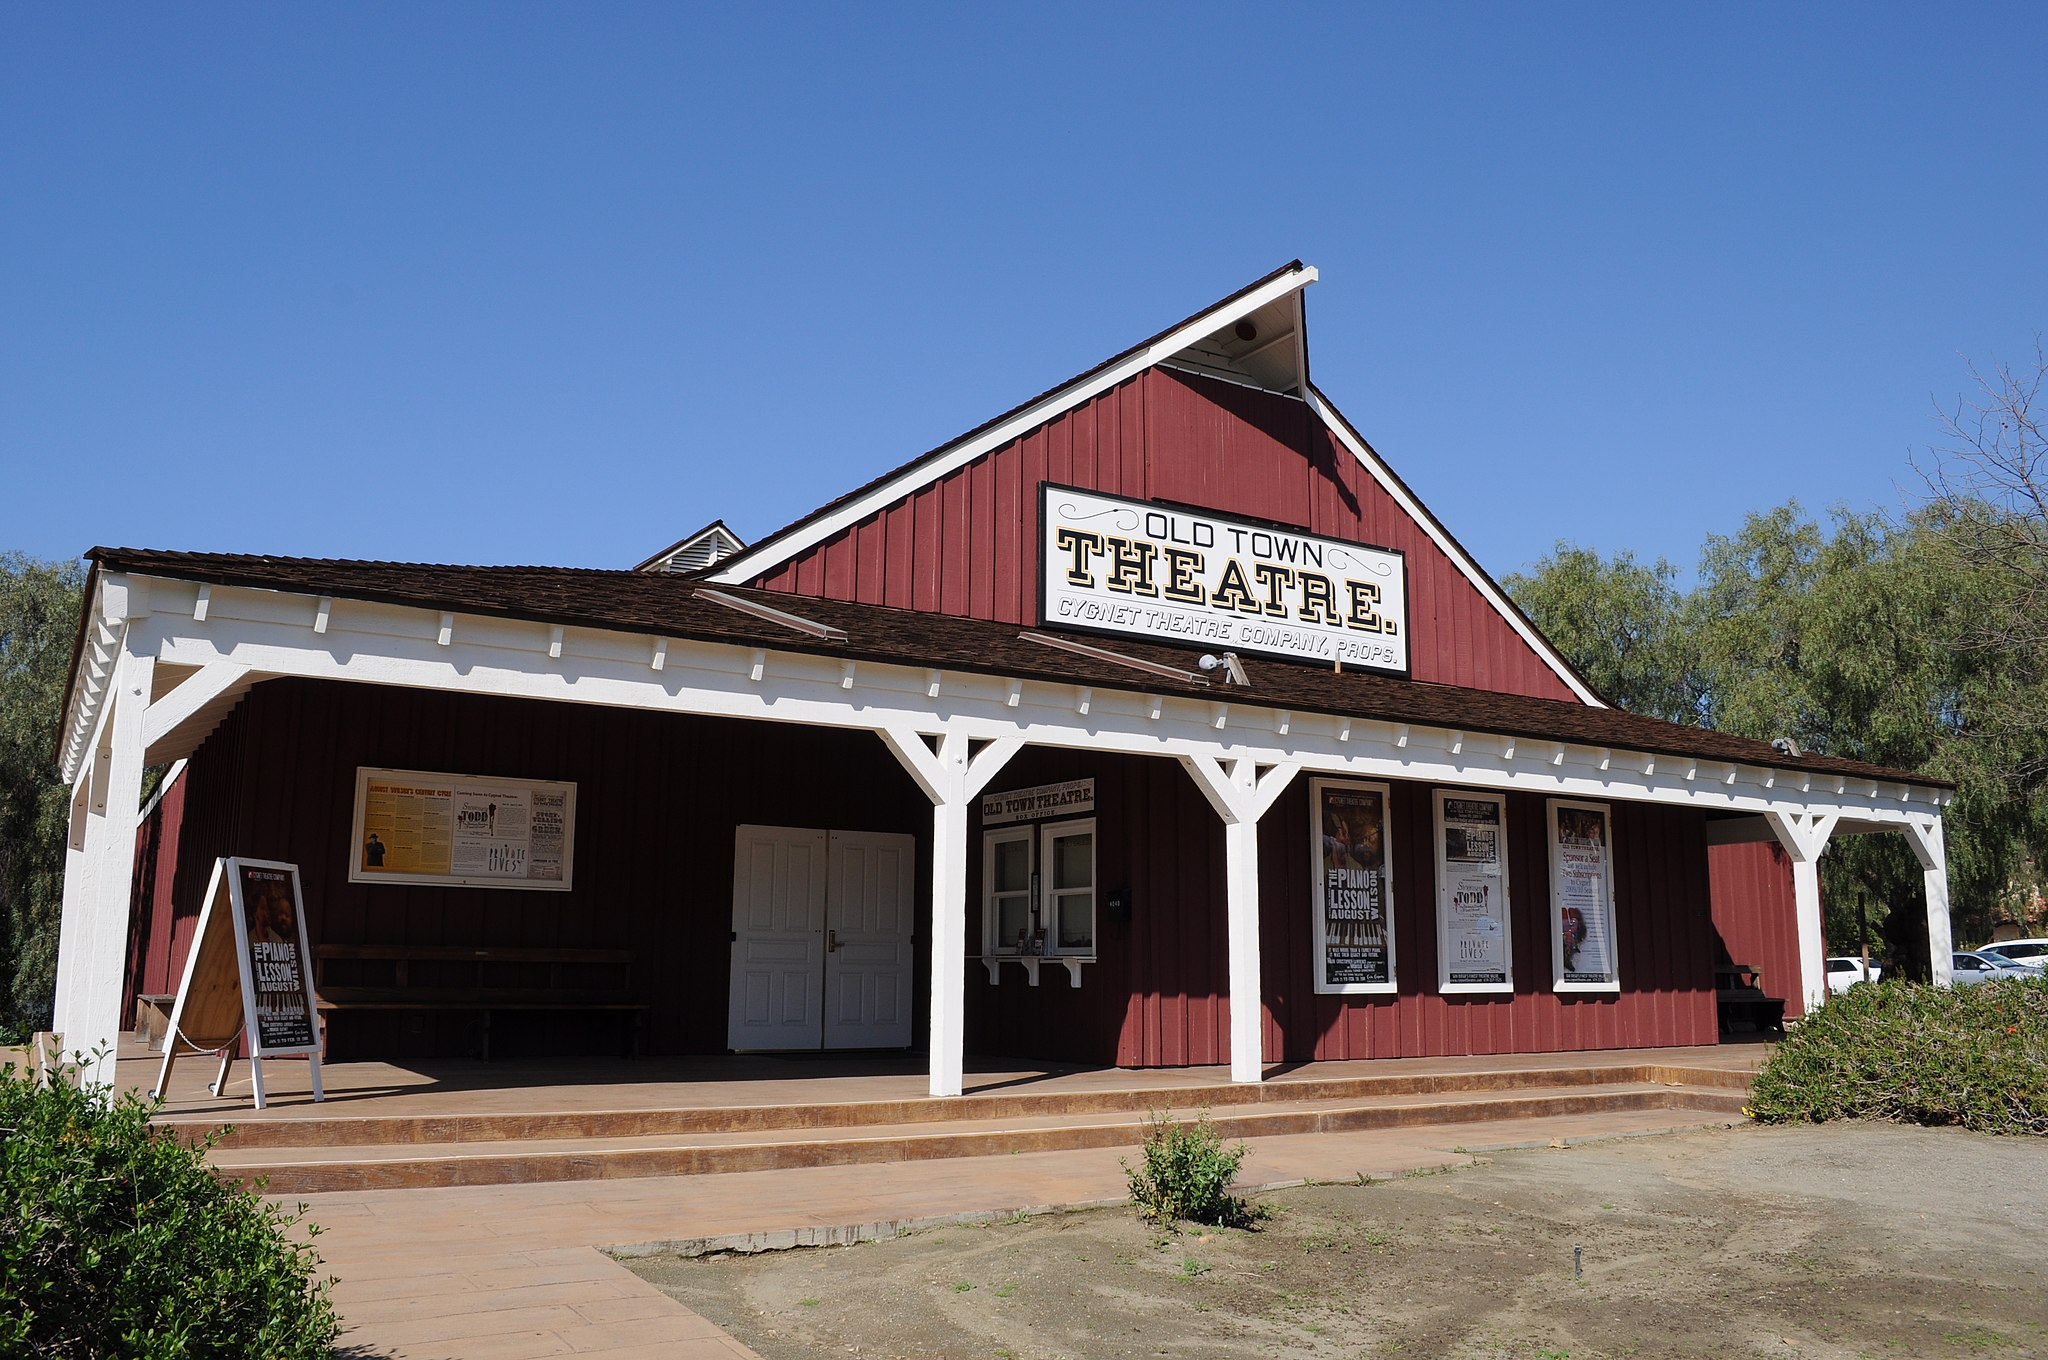 The Old Town Theatre's red exterior. The historic building is now home to the Cygnet Theatre.